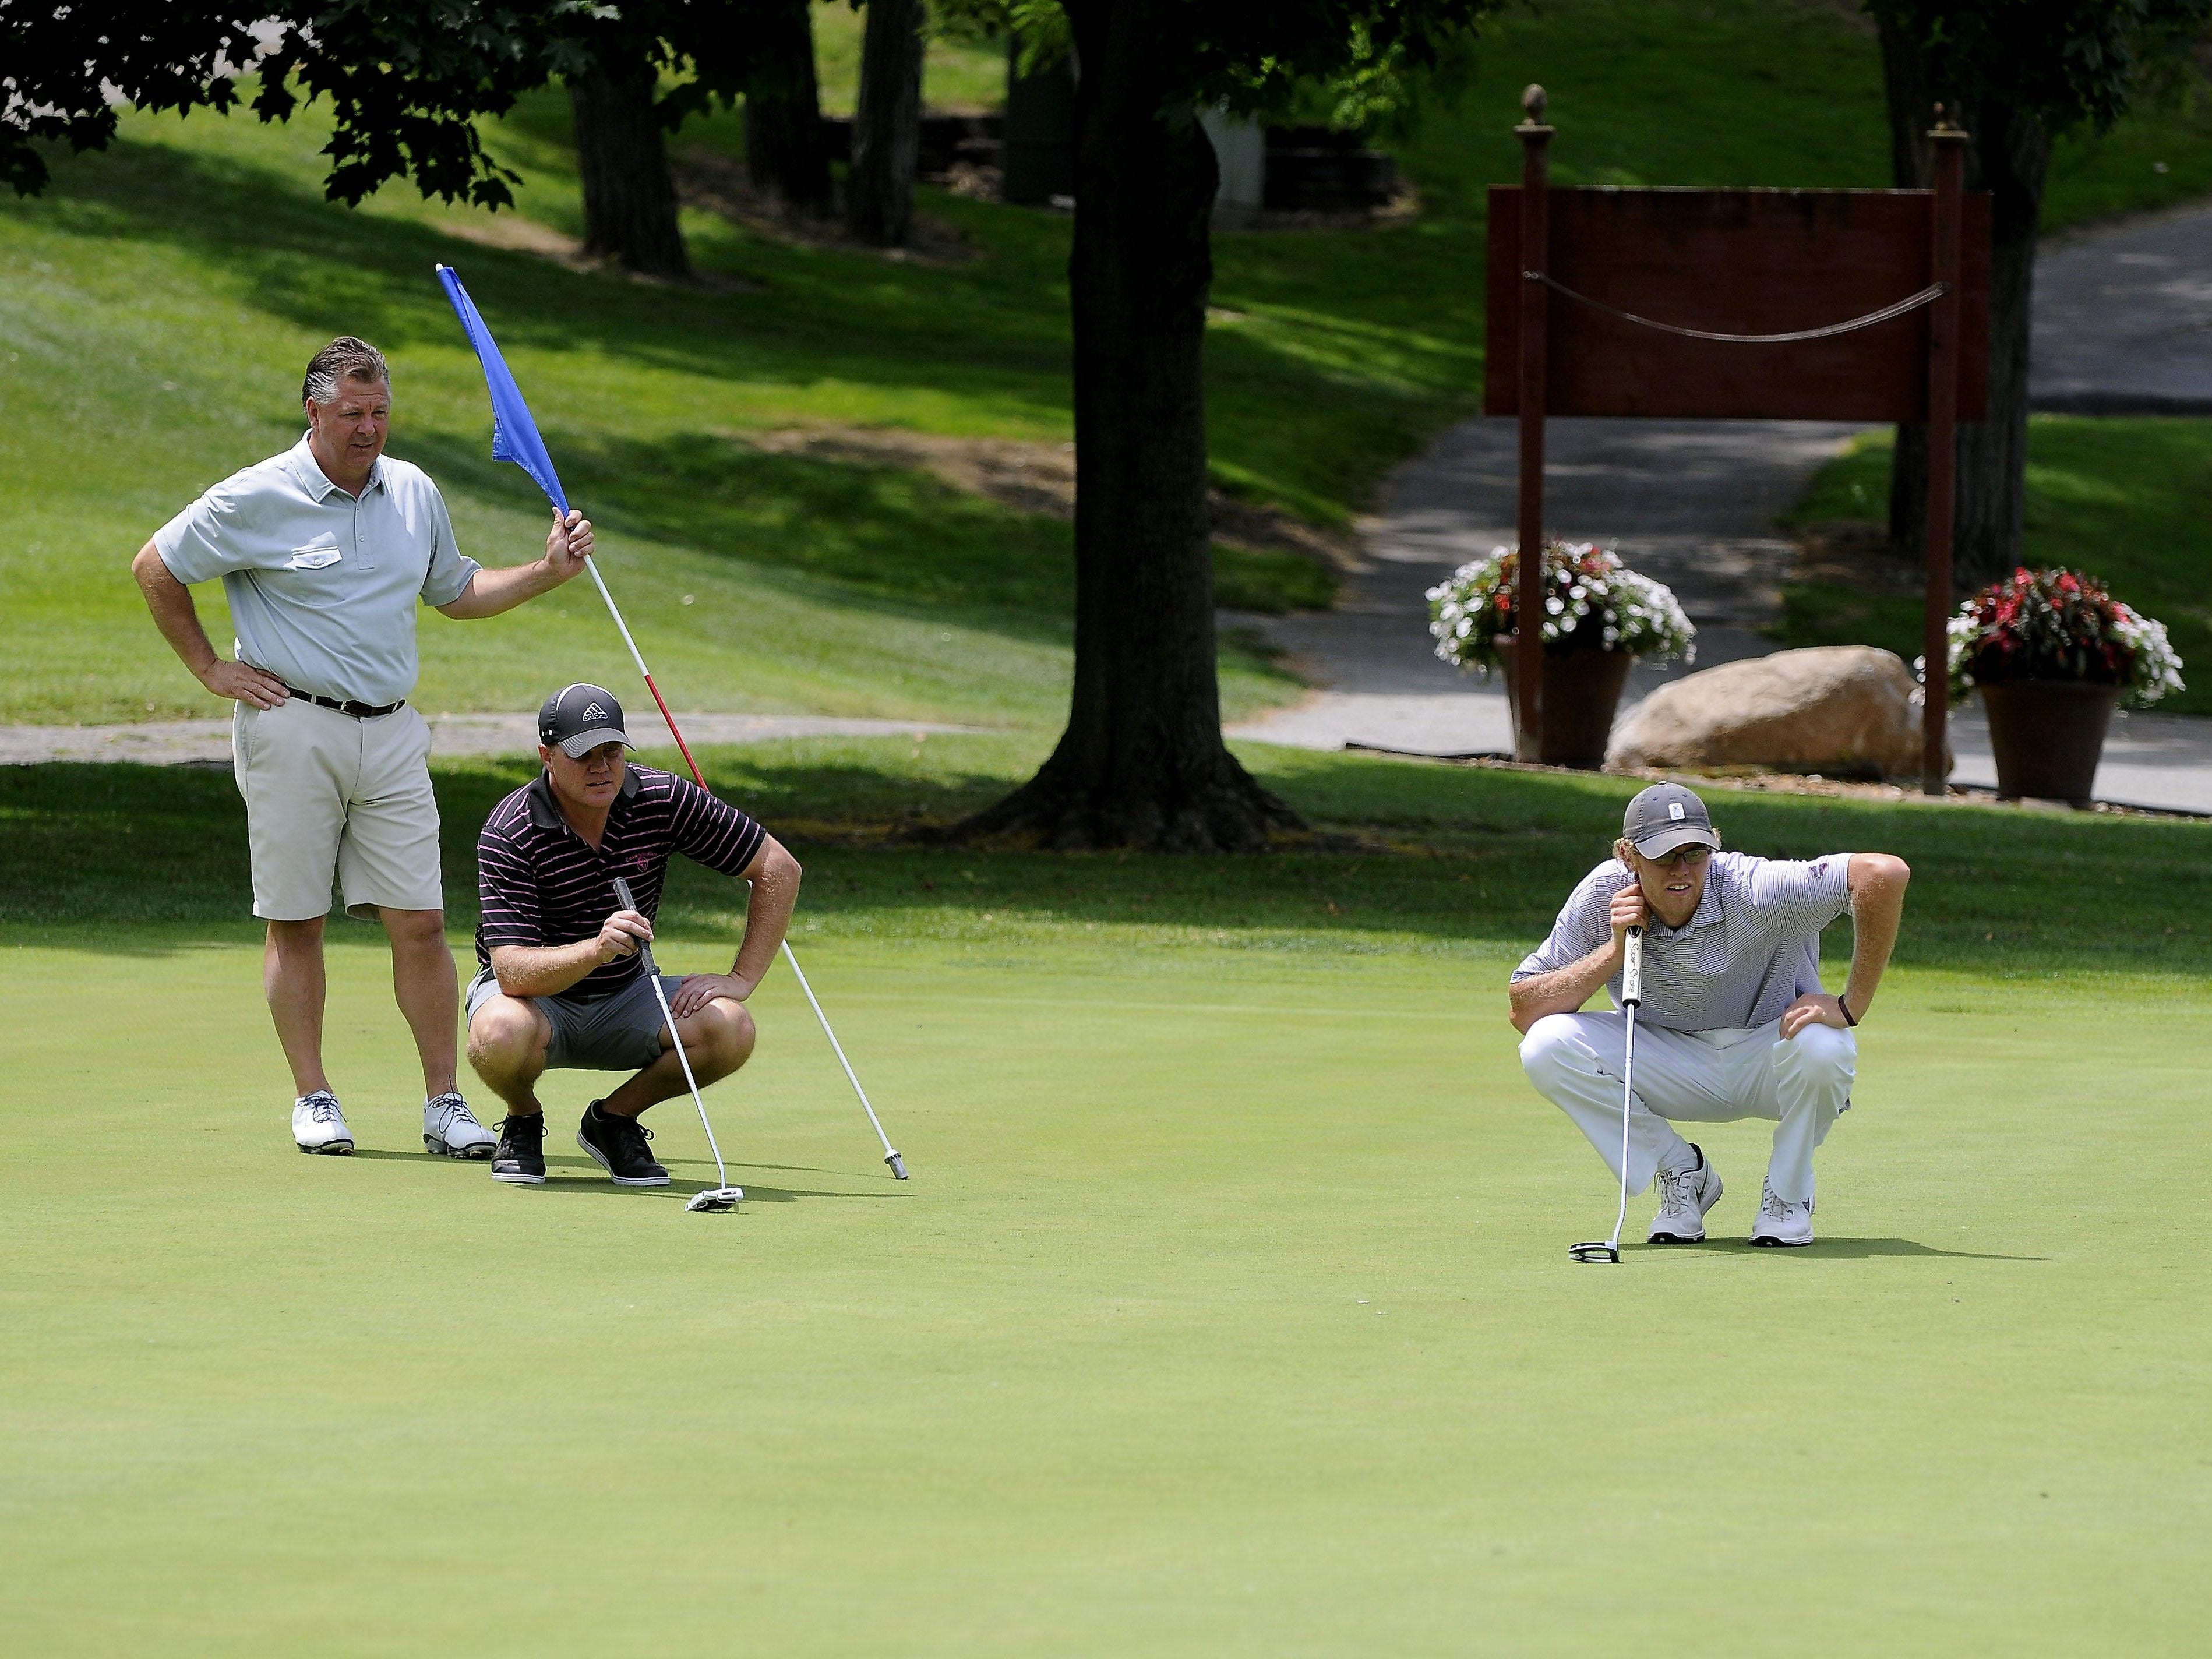 Ted Ernst, Tim Phipps watch as Patrick Cansfield looks over his shot on the 18th green Friday, July 10 during the Port Huron Elks 2015 Men's Invitational in Port Huron Township.